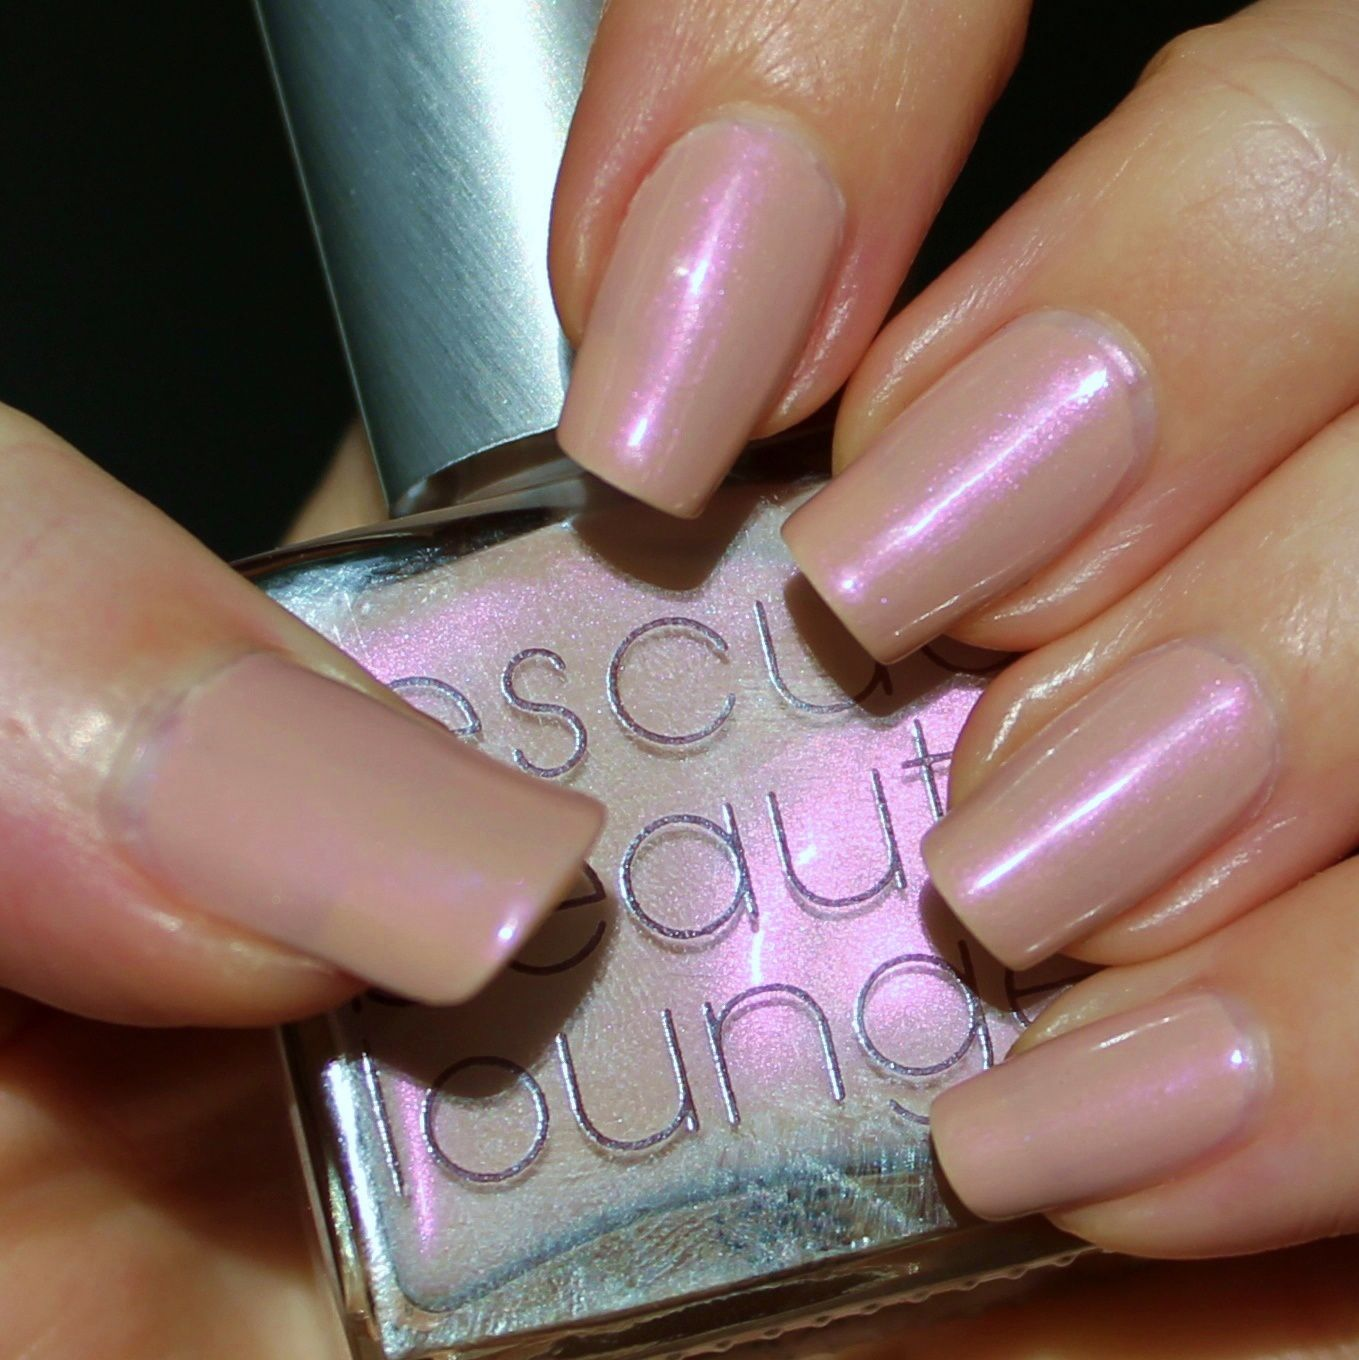 Essie Proteined Base Coat / Rescue Beauty Lounge Thank You / Poshe Top Coat